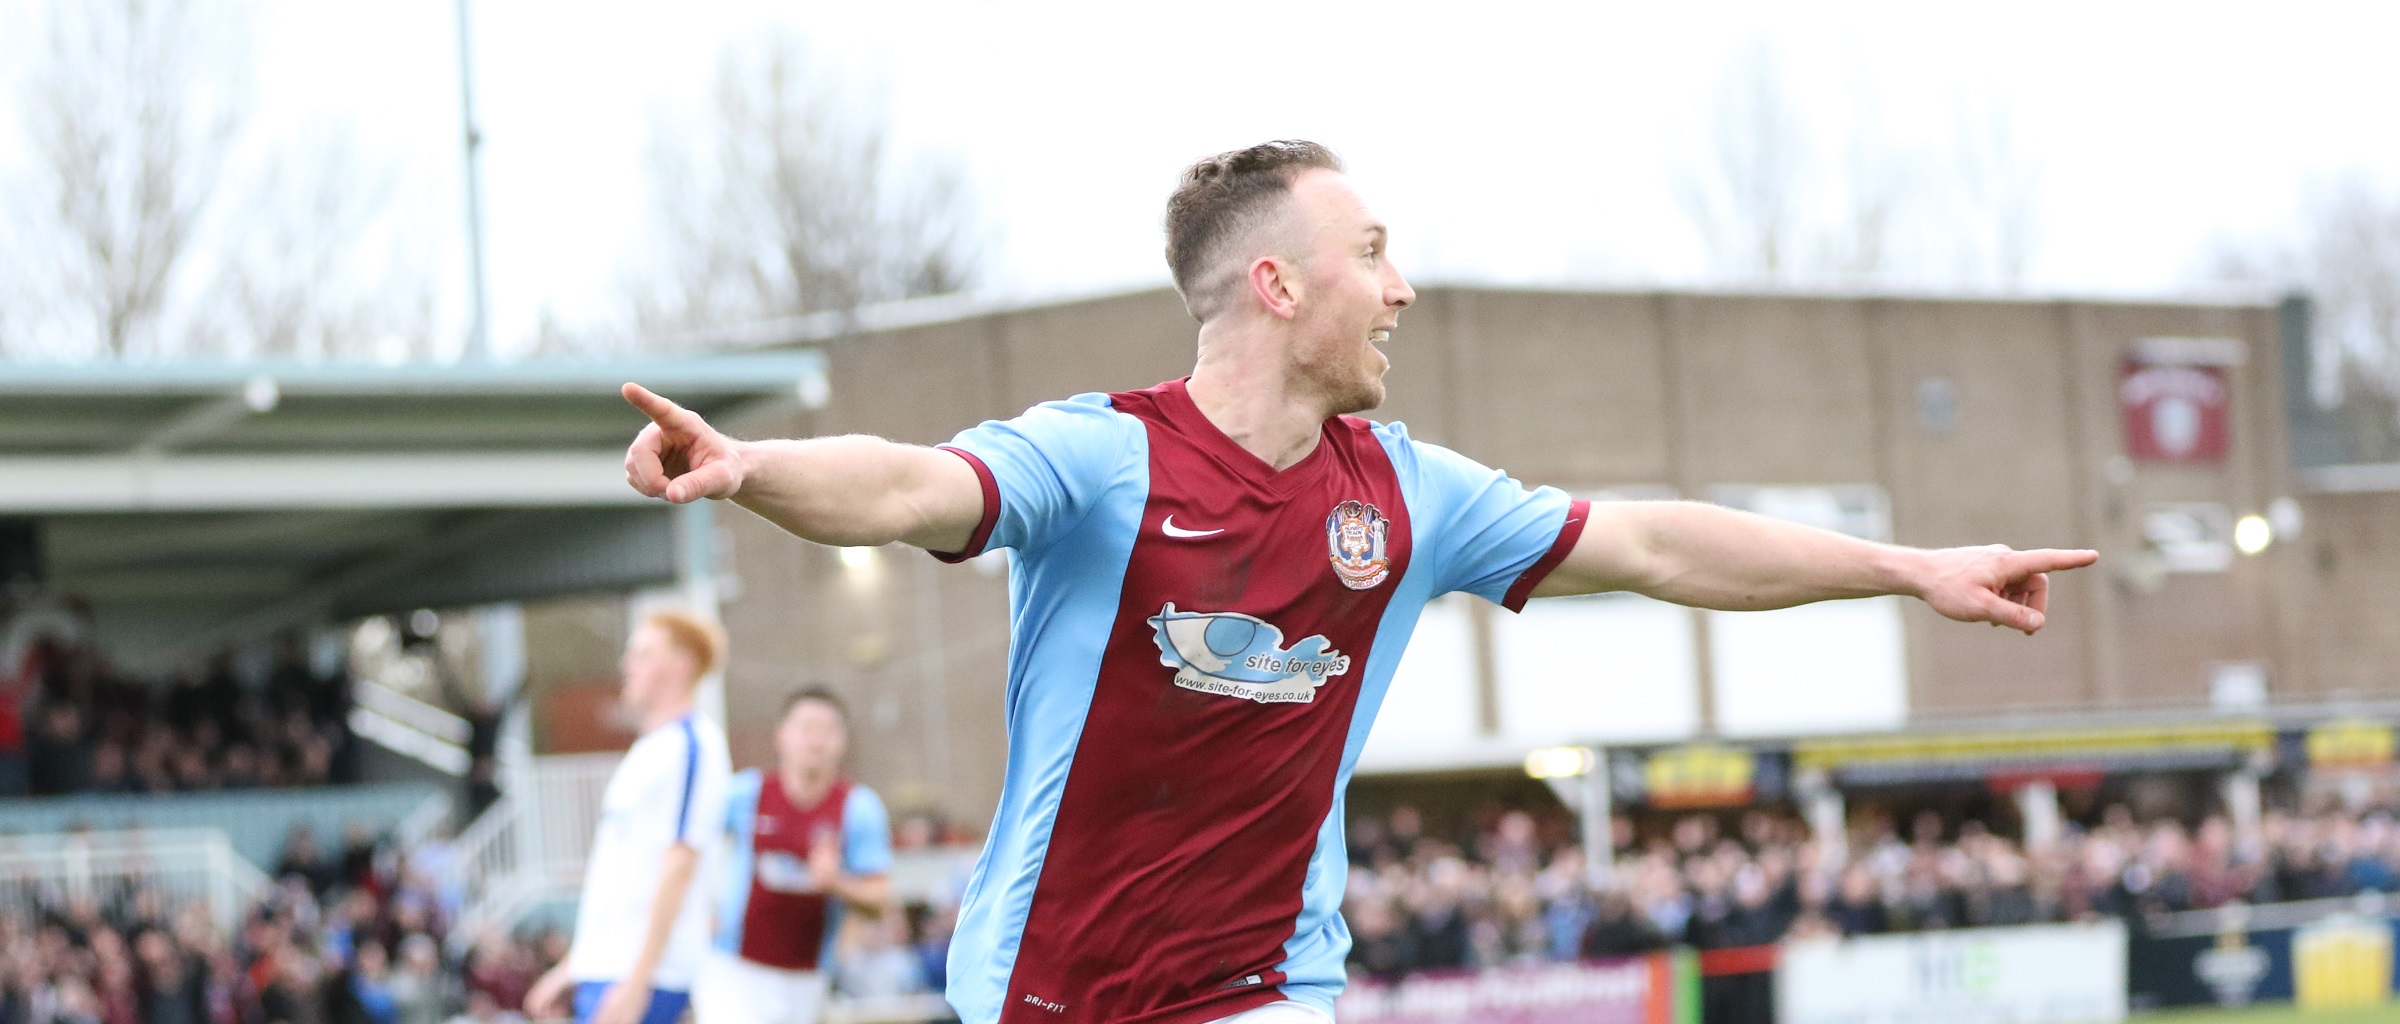 South Shields 4-0 Coleshill Town: Mariners into FA Vase final!